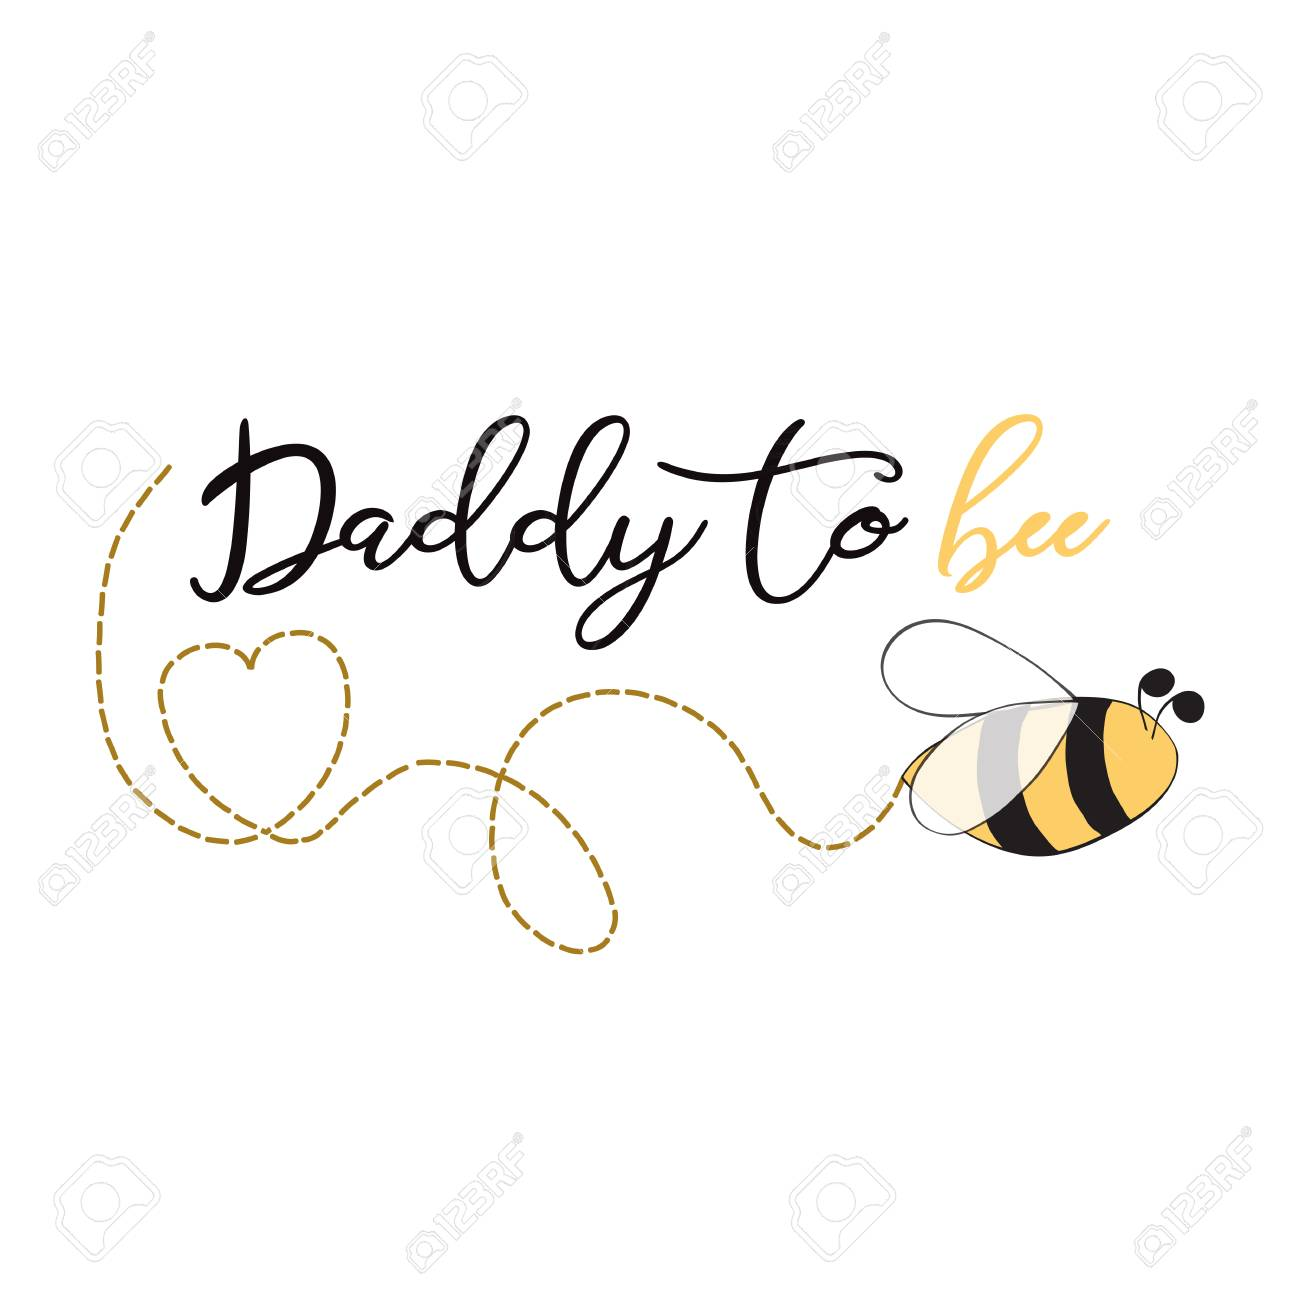 fathers day banner design with text daddy to bee decorated trace